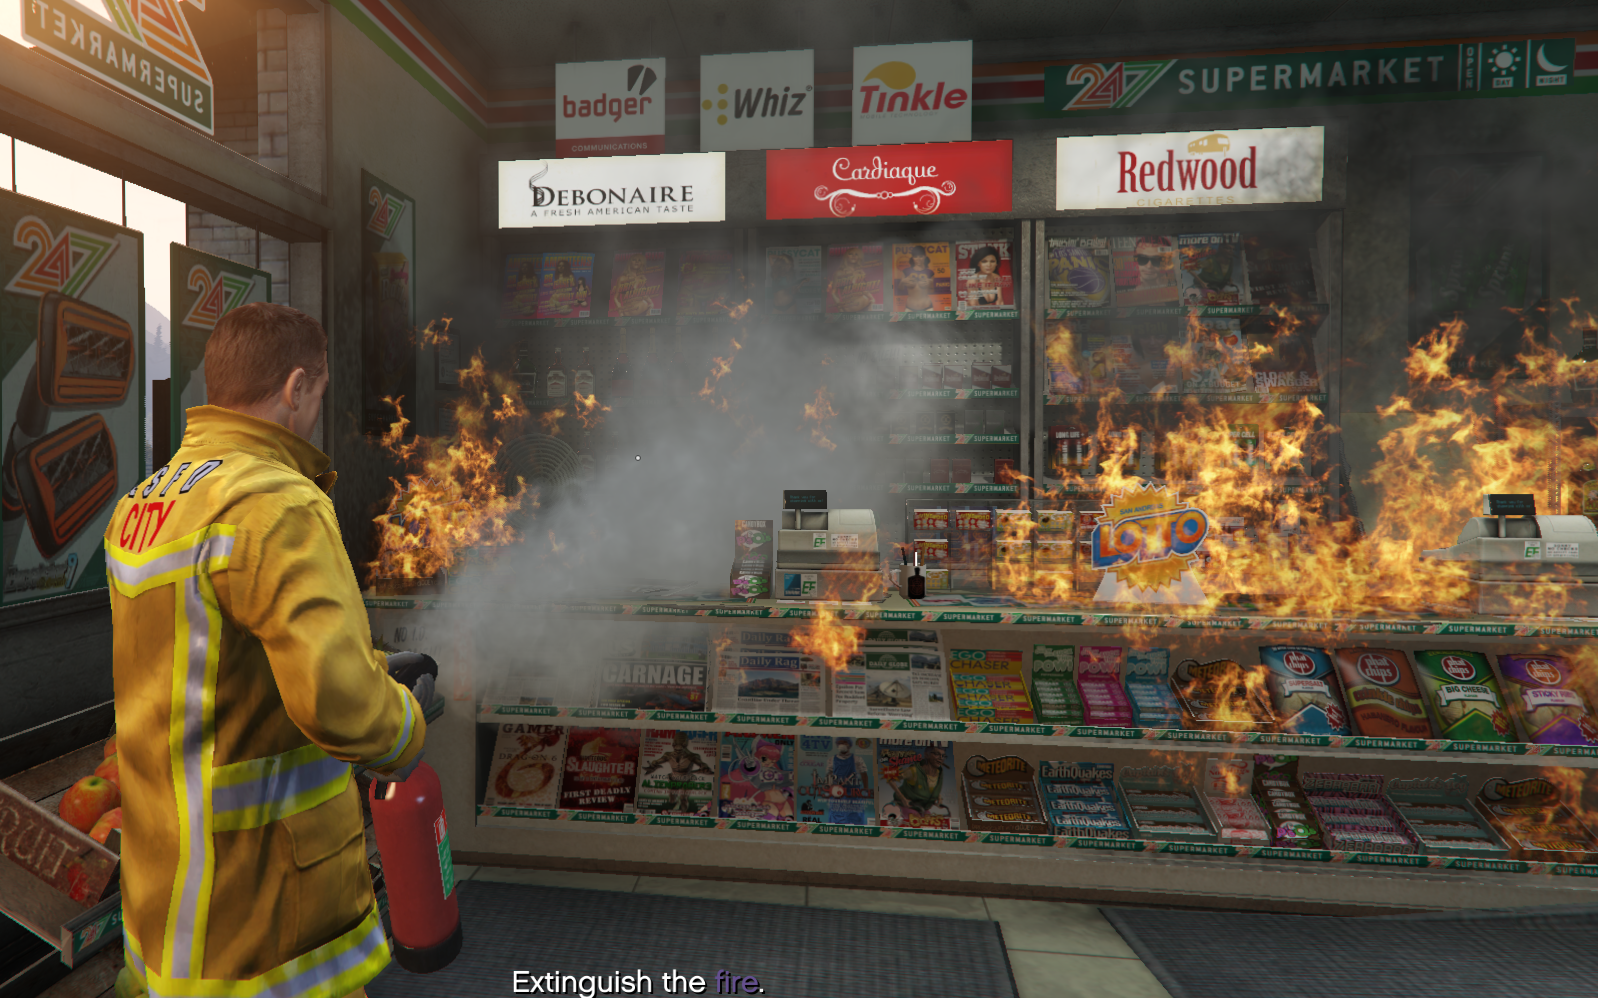 Quell blazes and practice CPR with the GTA 5 Firefighter mod